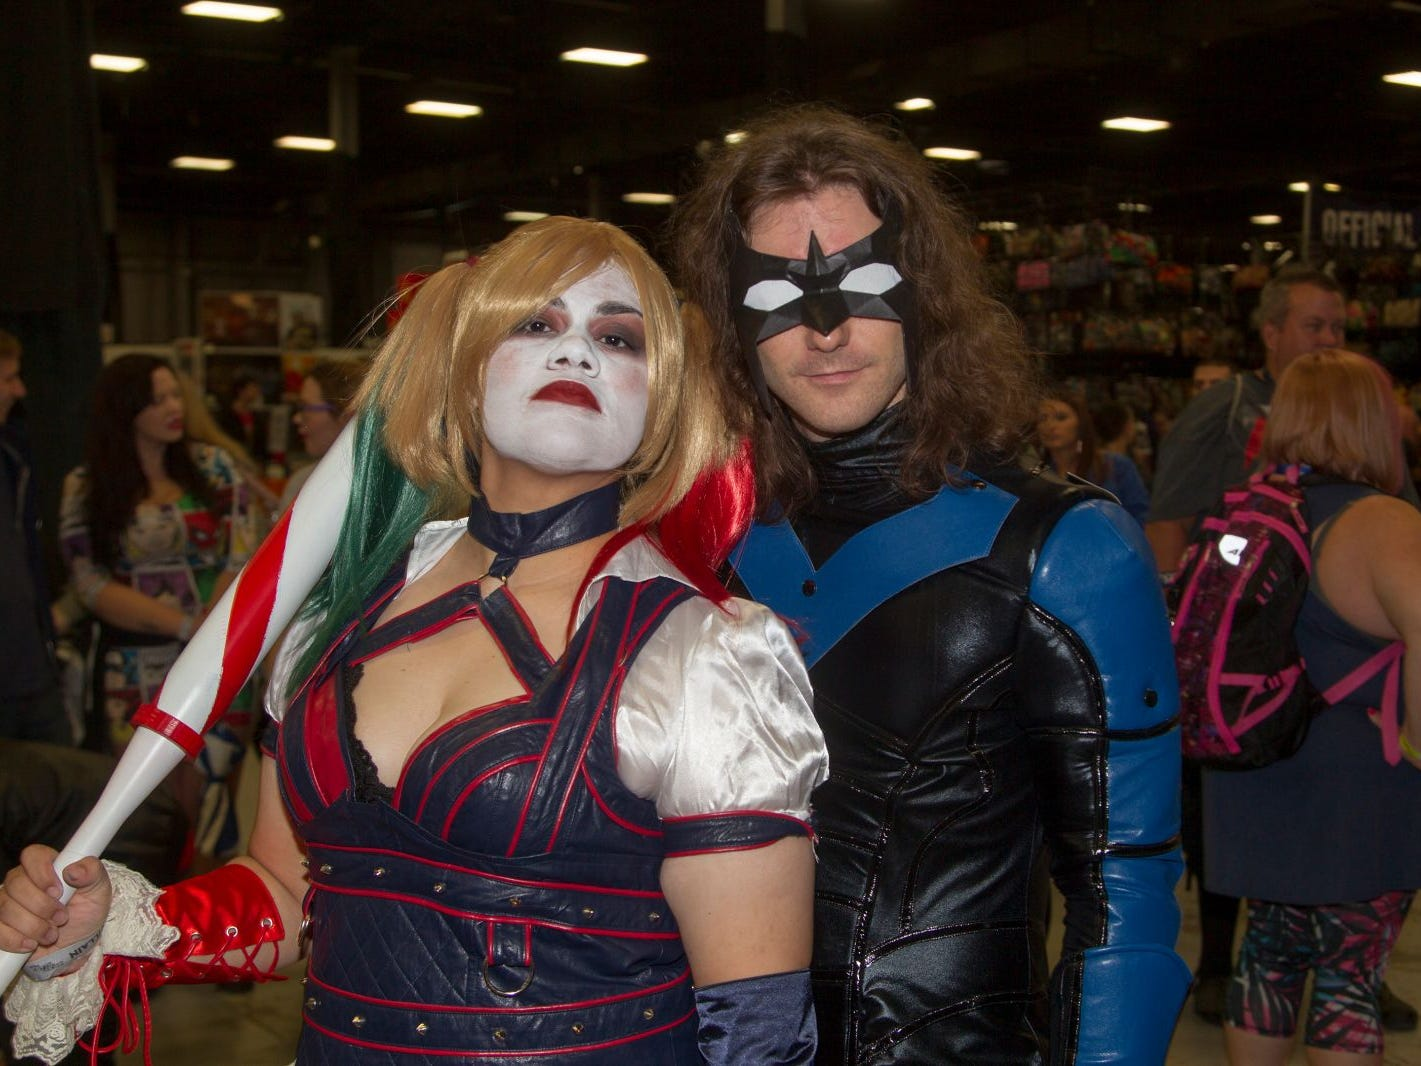 Rome as Harley Quinn and David as Nightwing. The 2018 Heroes and Villains Fan Fest took place at the New Jersey Convention & Expo Center. 09/09/2018